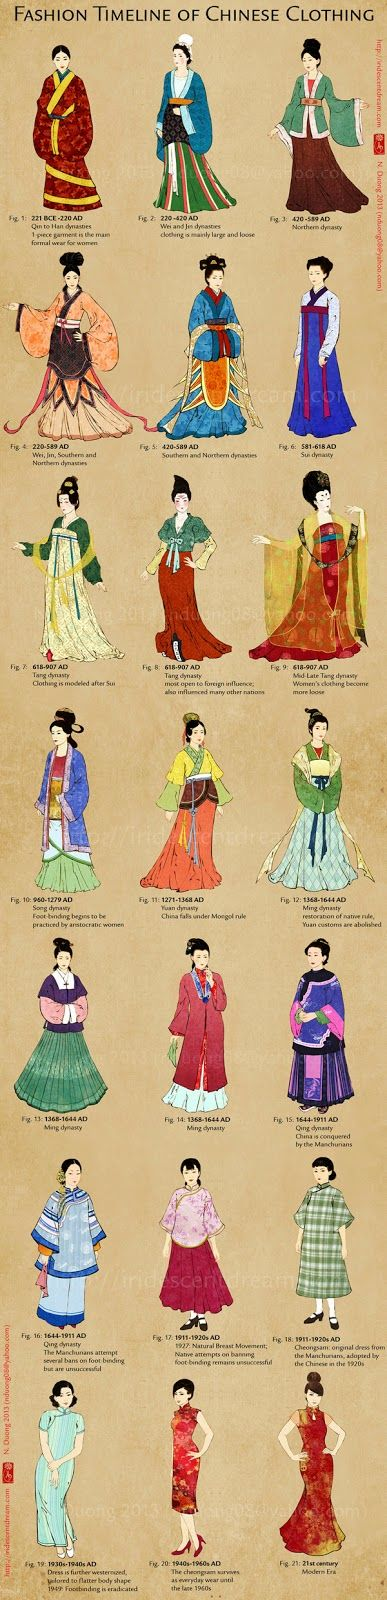 Chinese Clothing timeline